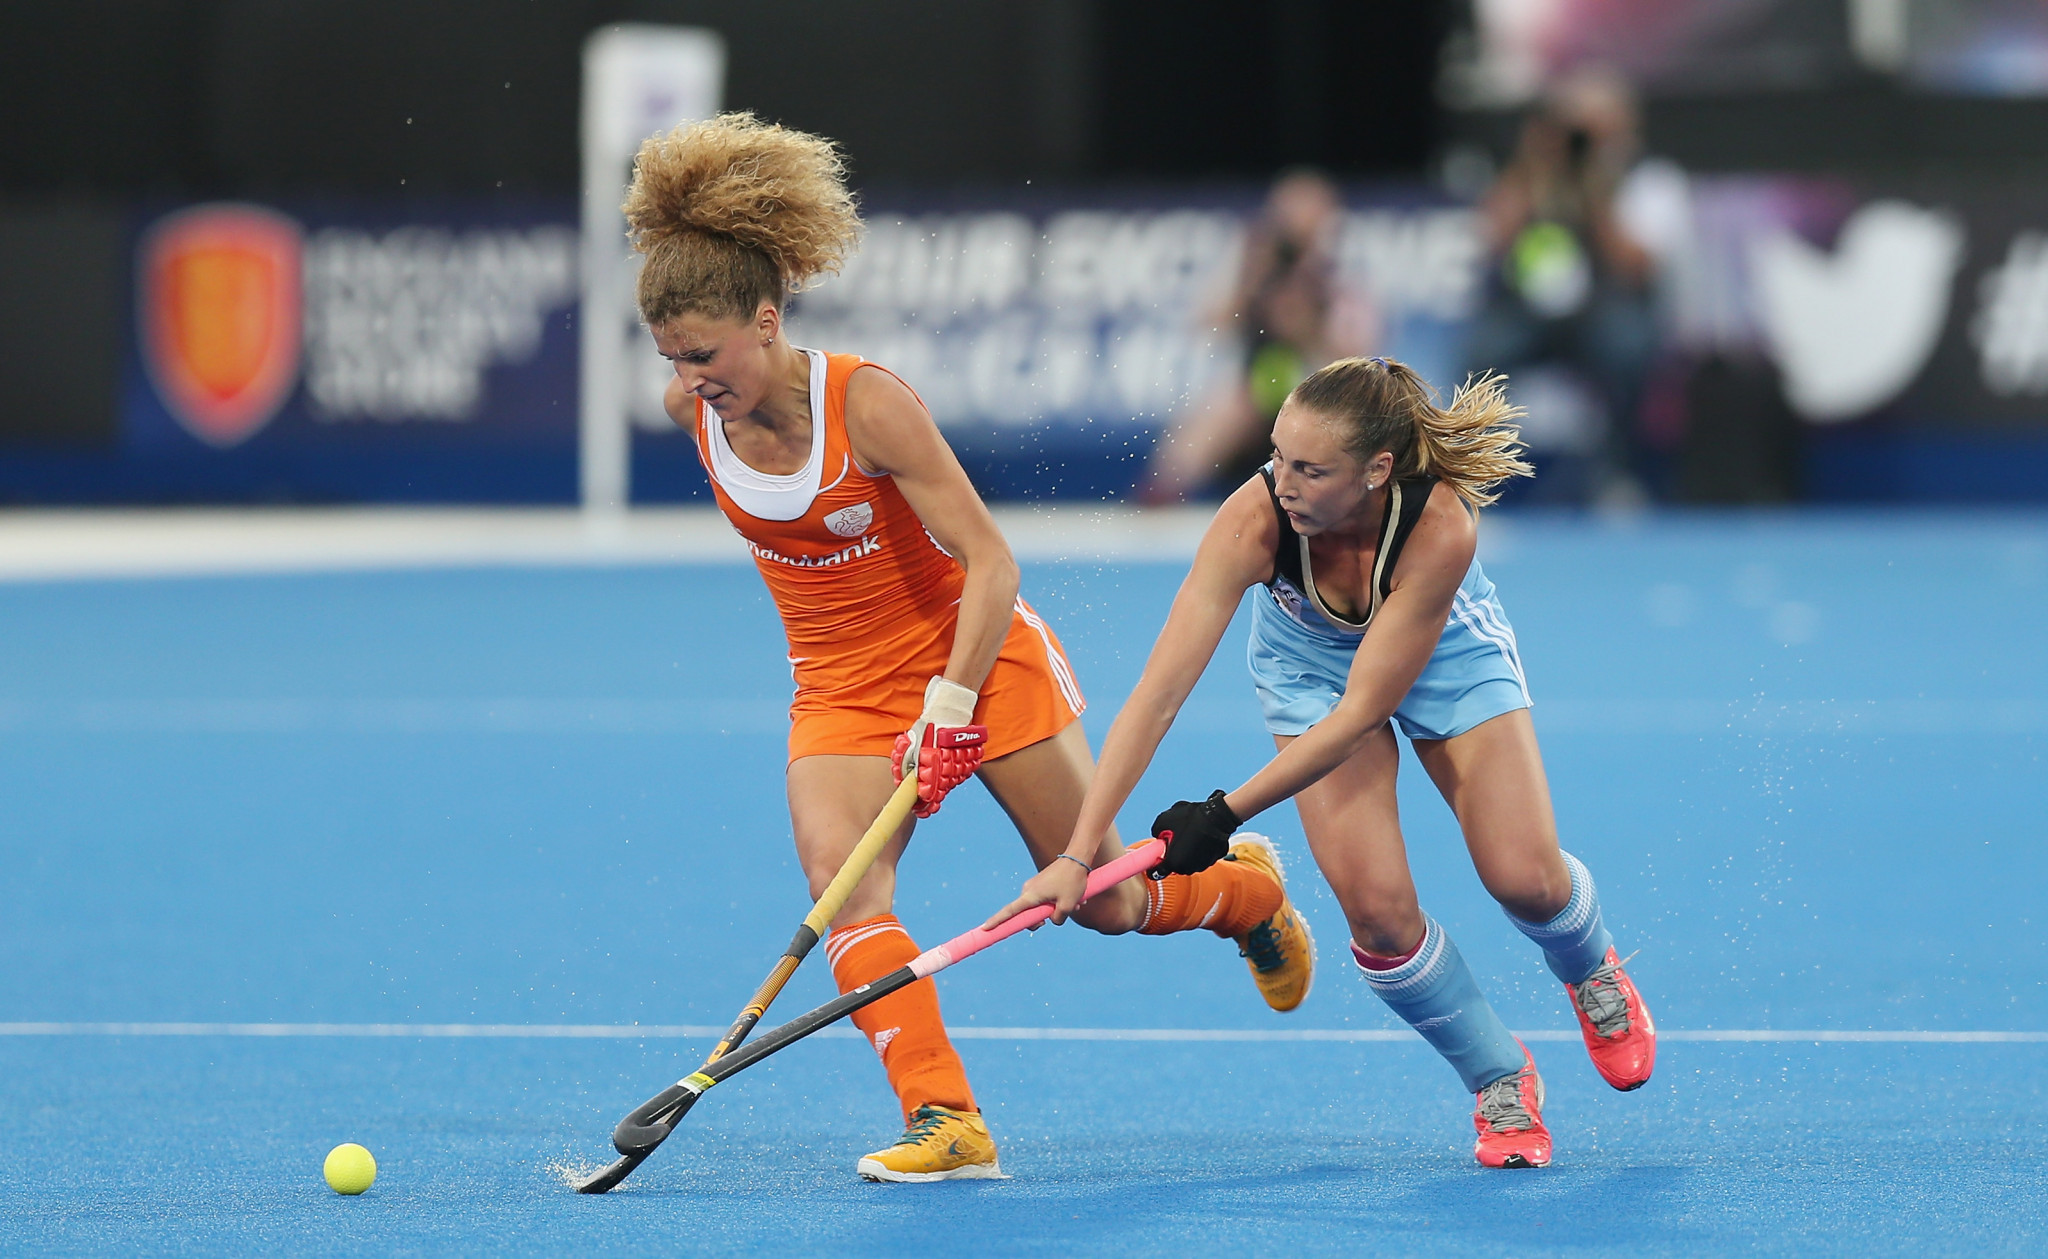 The Netherlands and Argentina are both participating in the 2018 Women's Hockey Champions Trophy which begins tomorrow in China ©Getty Images